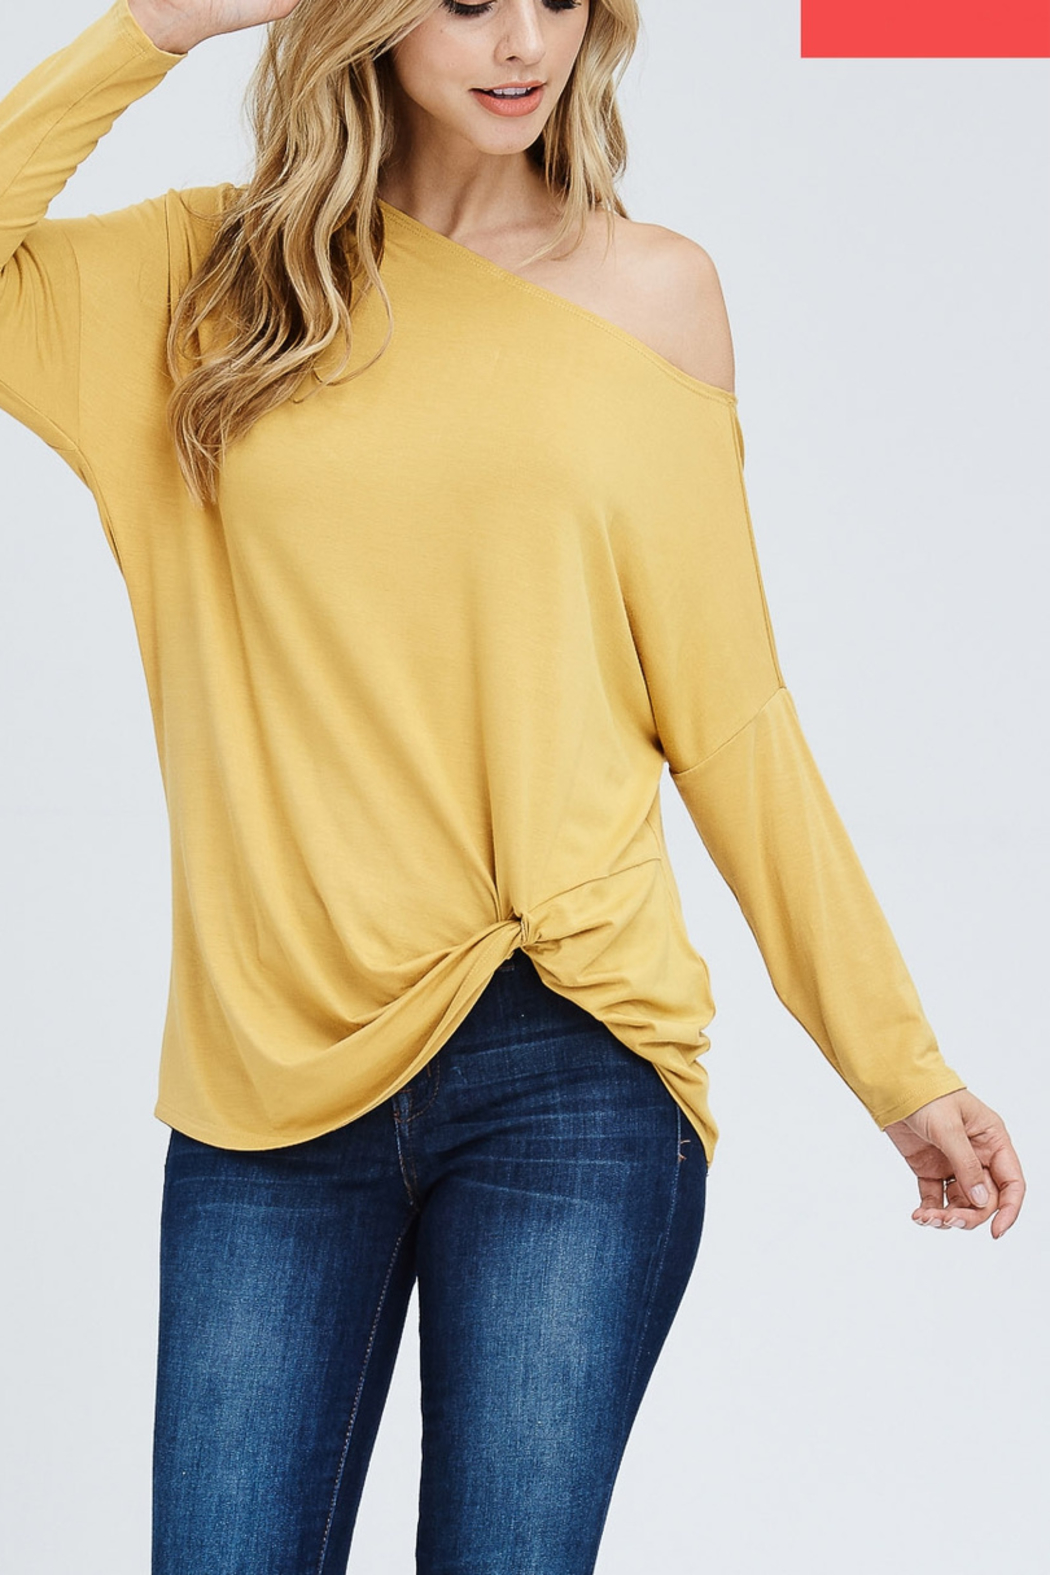 bdd27bf378 White Birch One Shoulder Knot Top from Indiana by Lyn-Maree's ...